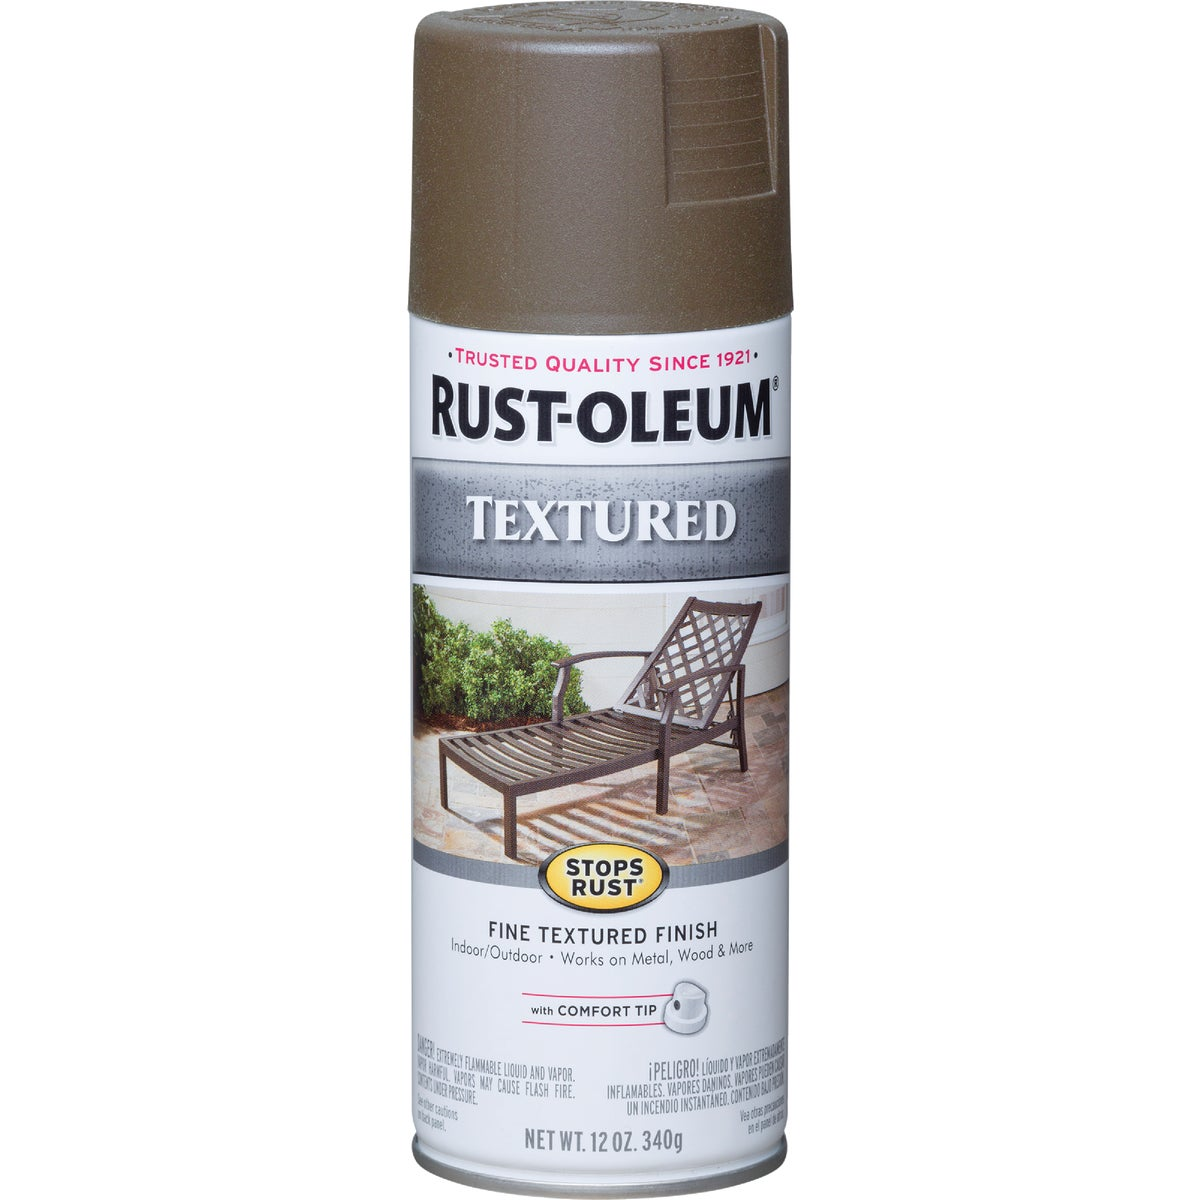 BRONZE TEXT SPRAY PAINT - 7226-830 by Rustoleum